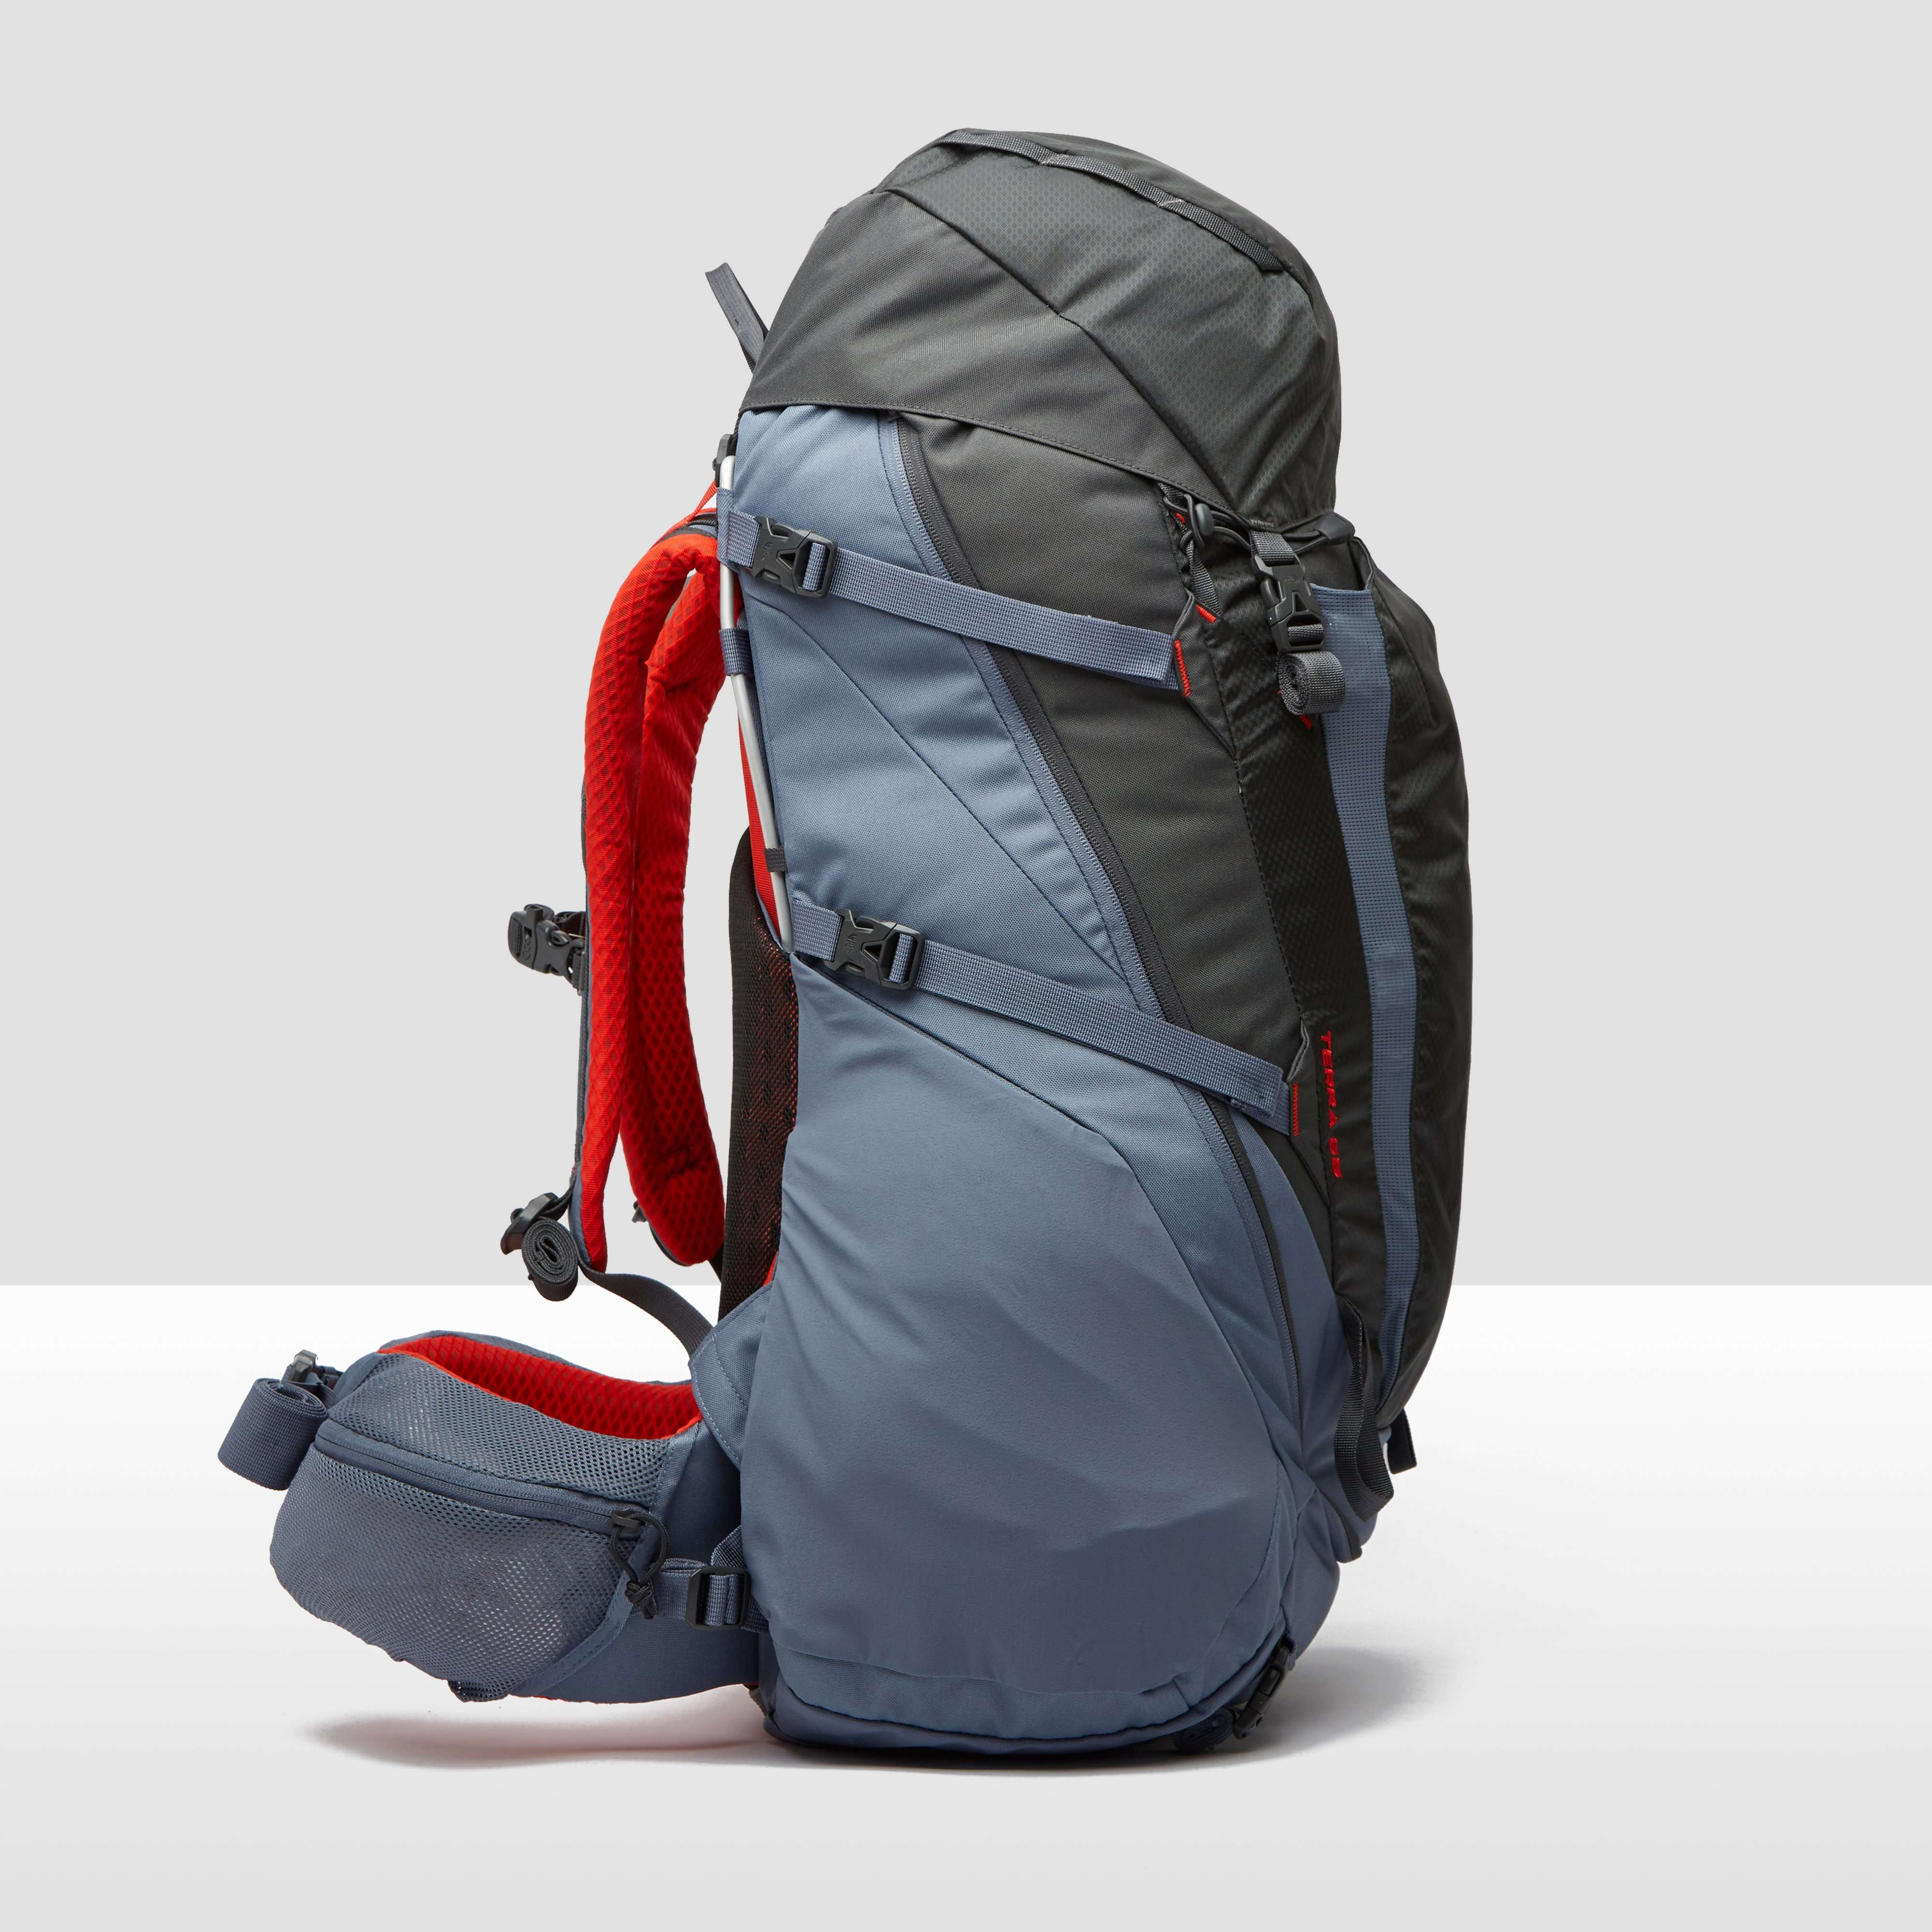 THE NORTH FACE TERRA BACKPACK 65 LITER GRIJS/ROOD